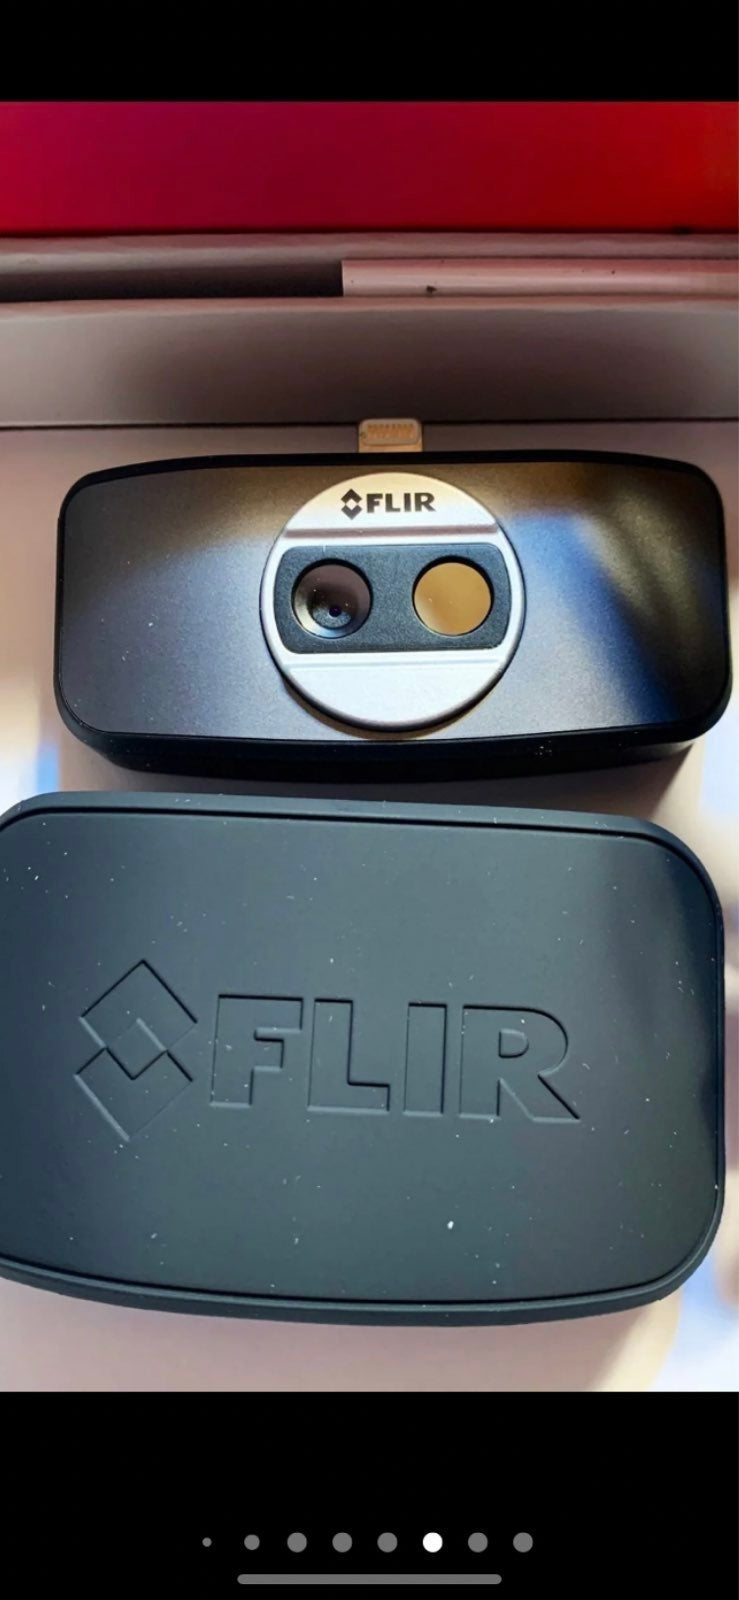 FlirOne Thermal imaging Camera for Iphon